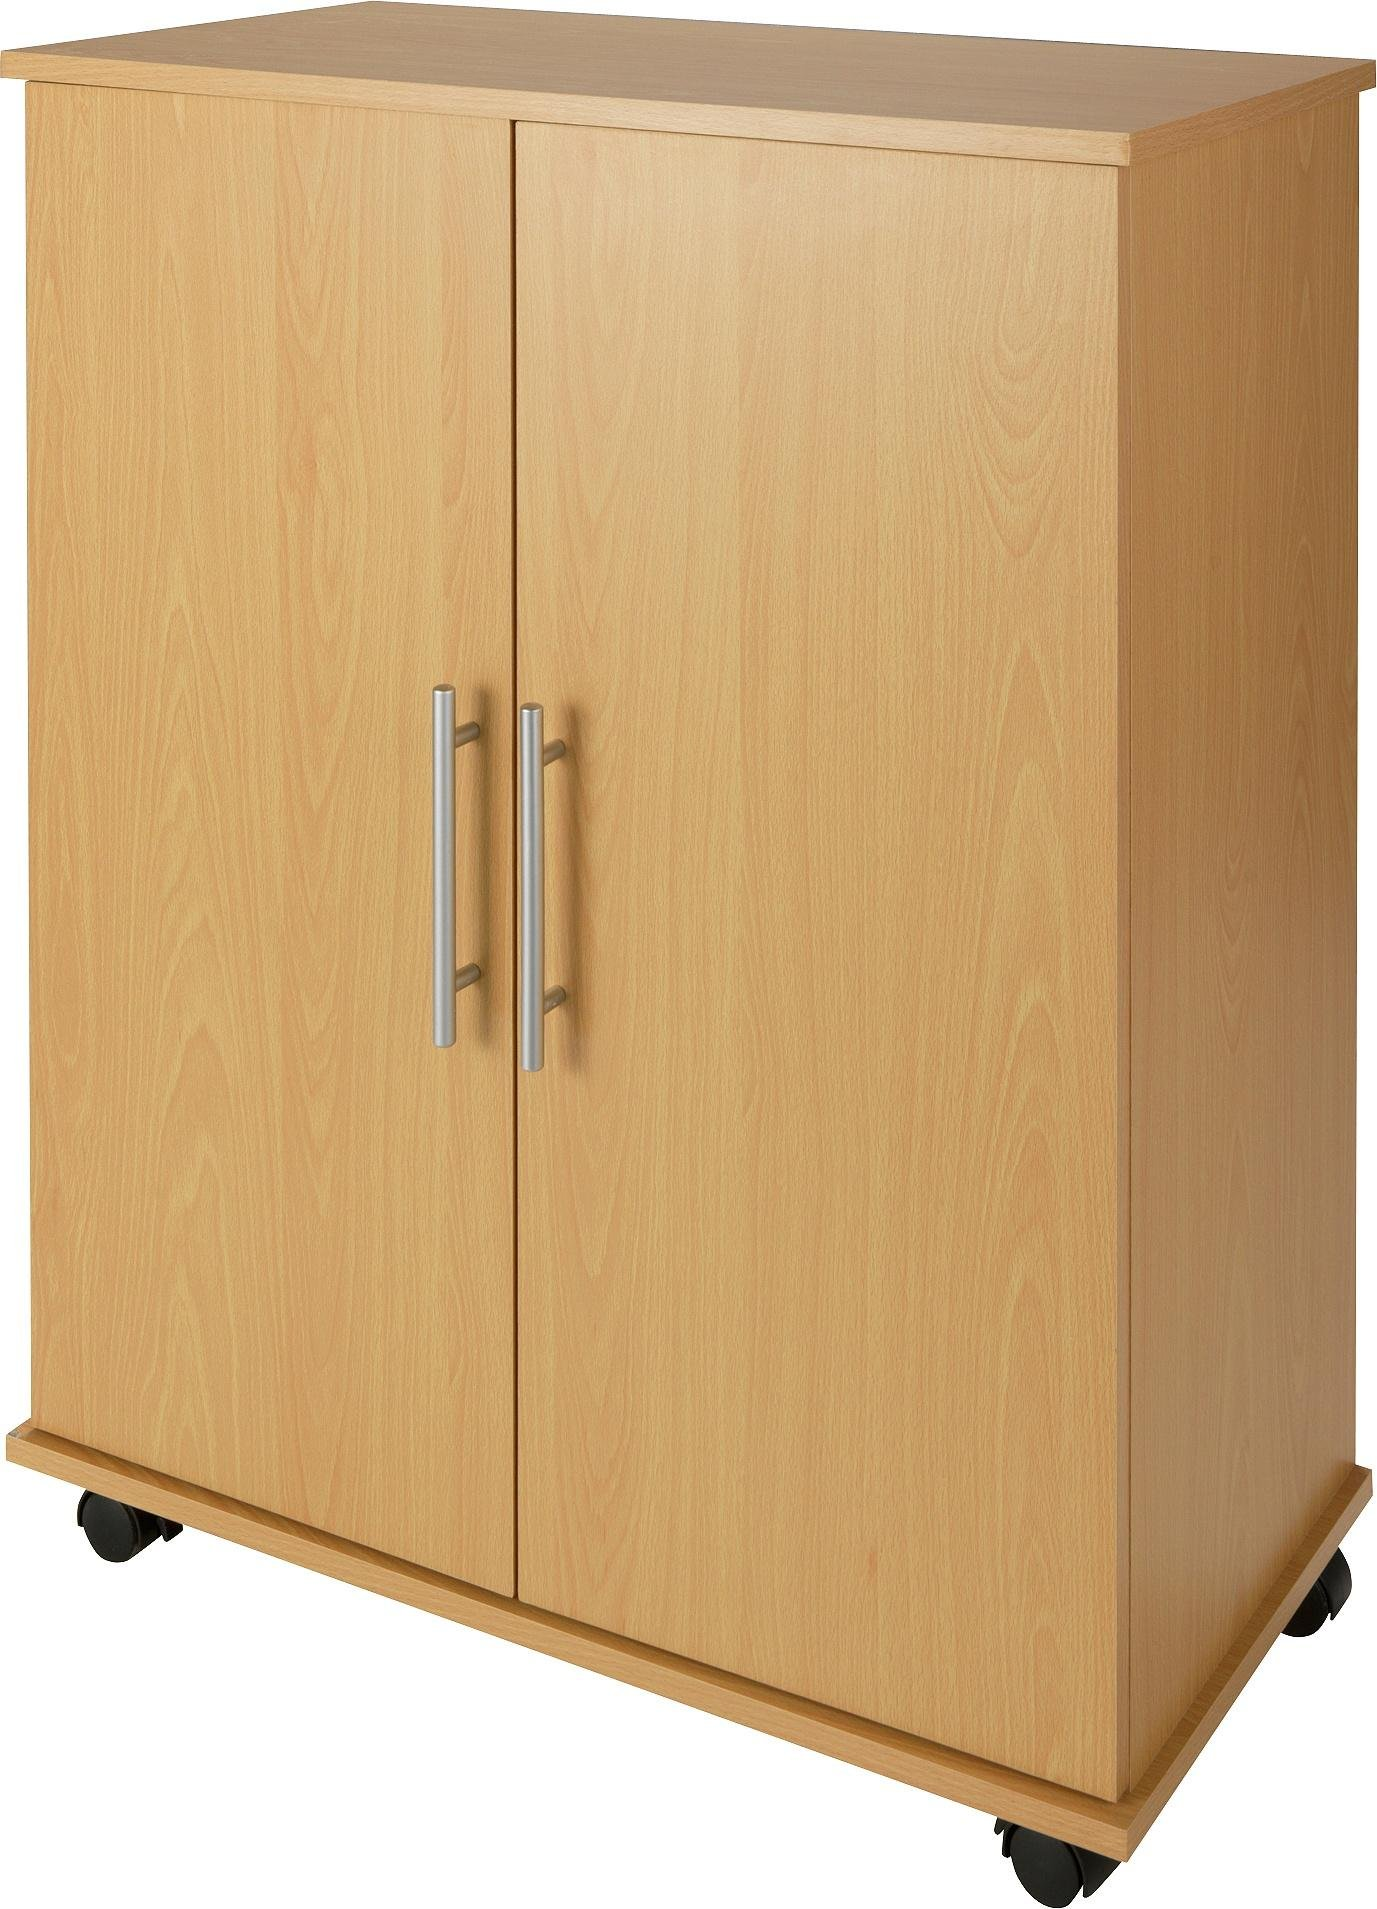 Buy Home Storage Cupboard Beech Effect At Argos Co Uk Your Online Shop For Filing Cabinets